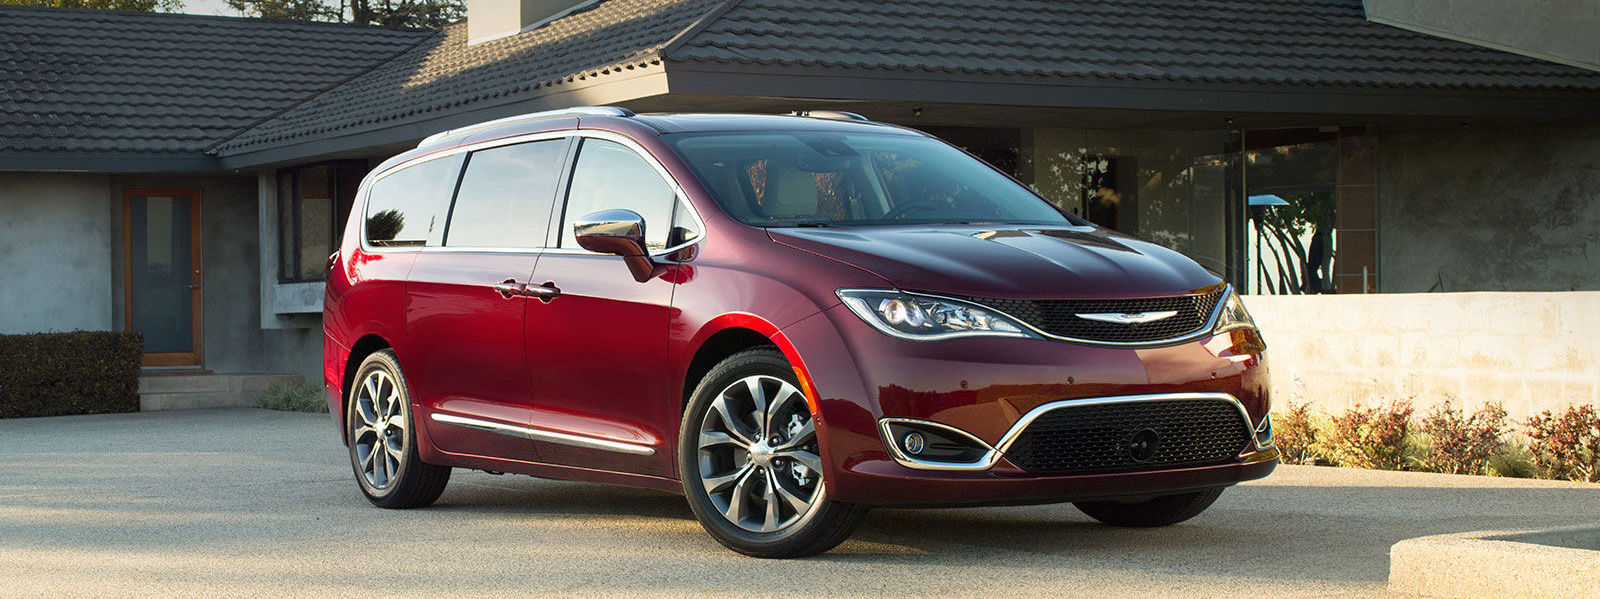 Red 2017 Chrysler Pacifica Performance Parked outside a house